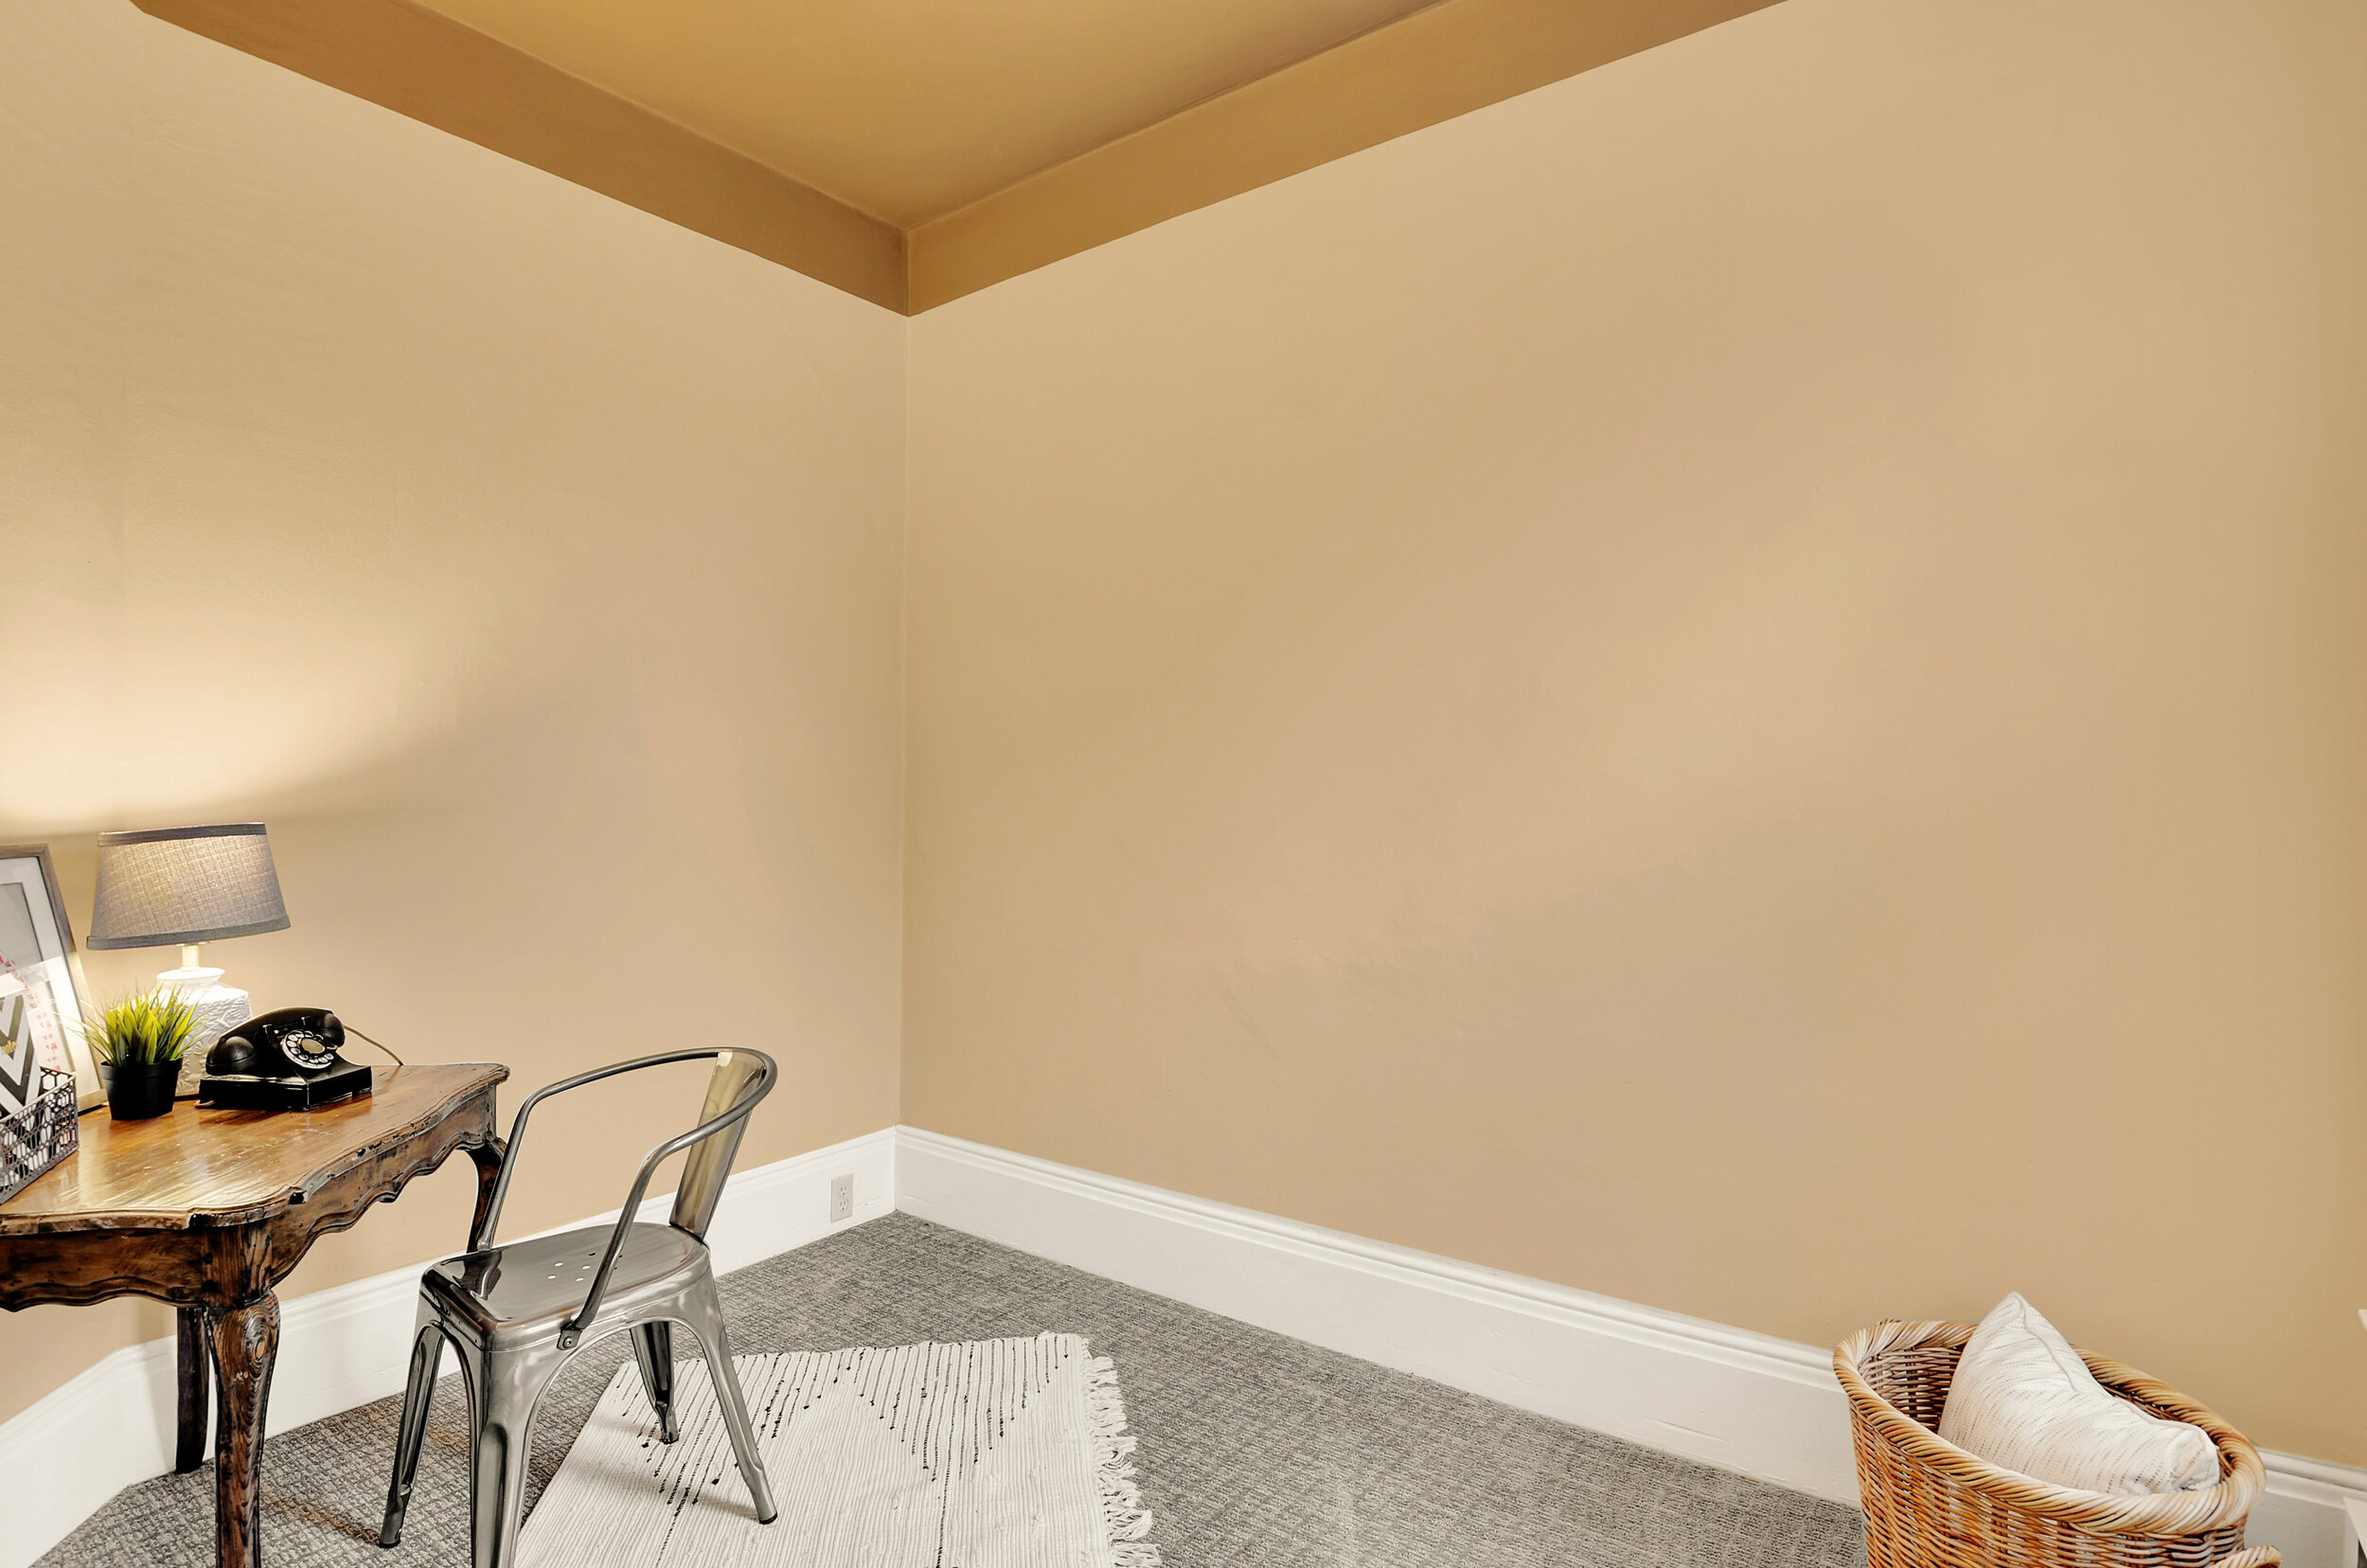 This third bedroom makes a good nursery, child's room, guest room, or office.